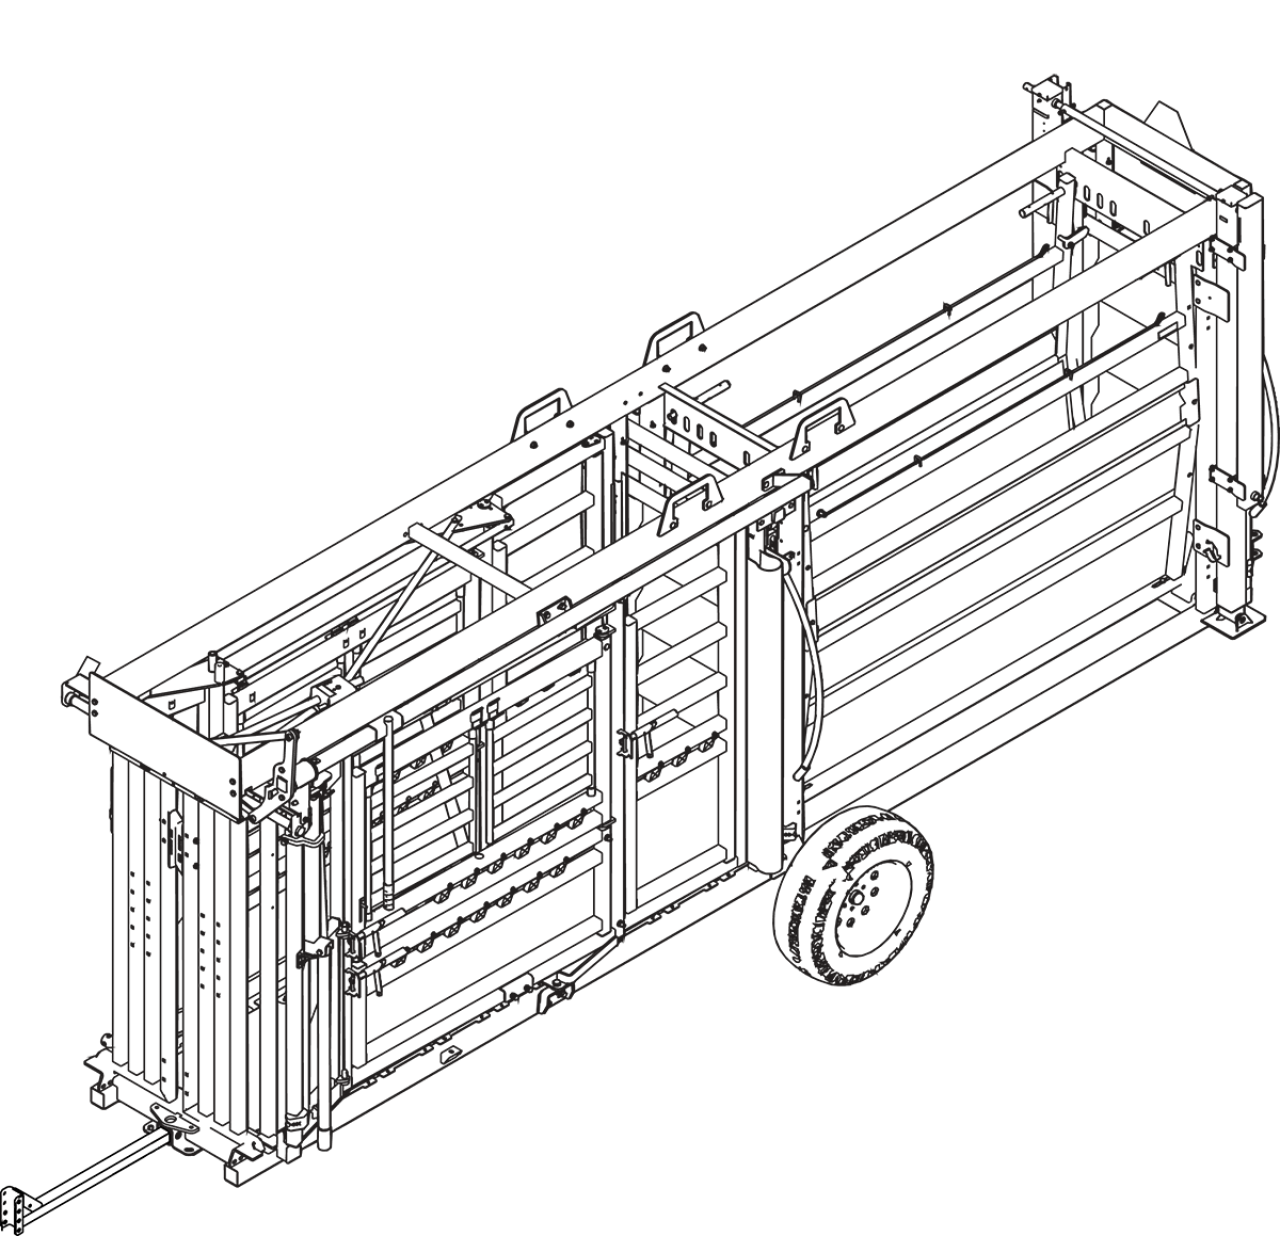 CAD drawing of the portable cattle chute and alley